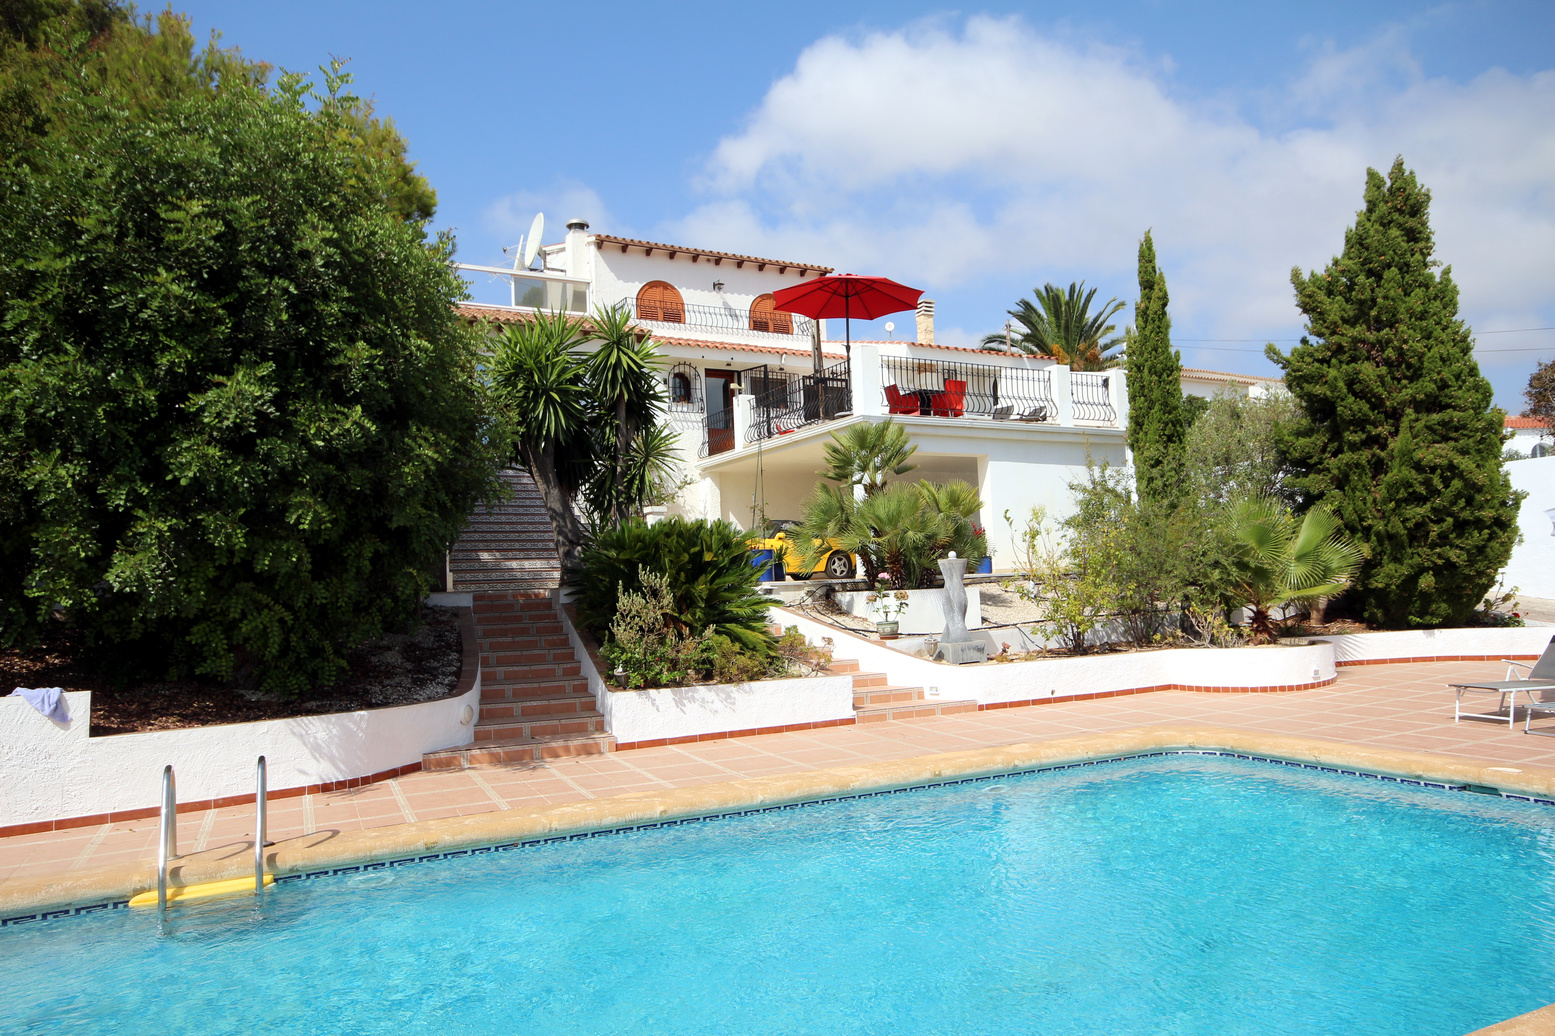 EXCELLENT LARGE VILLA ON A LARGE PLOT IN FANADIX, MORAIRA